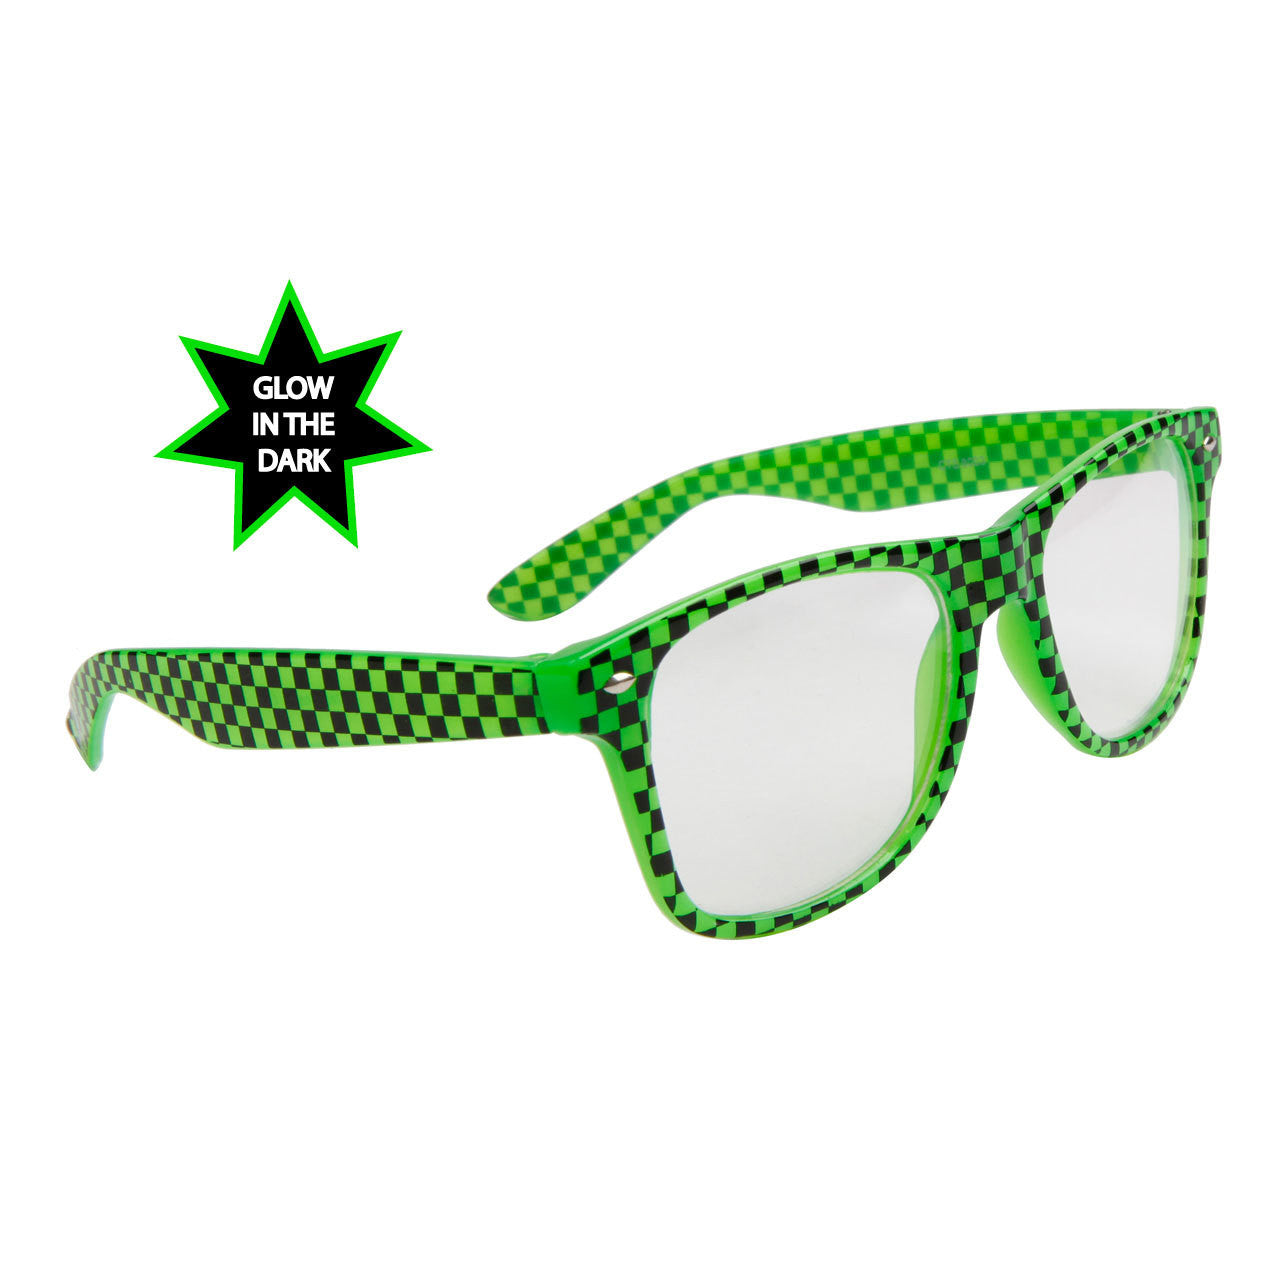 Glow In The Dark Clear Lens Wayfarer Sunglasses w/ Neon Checkered Frame